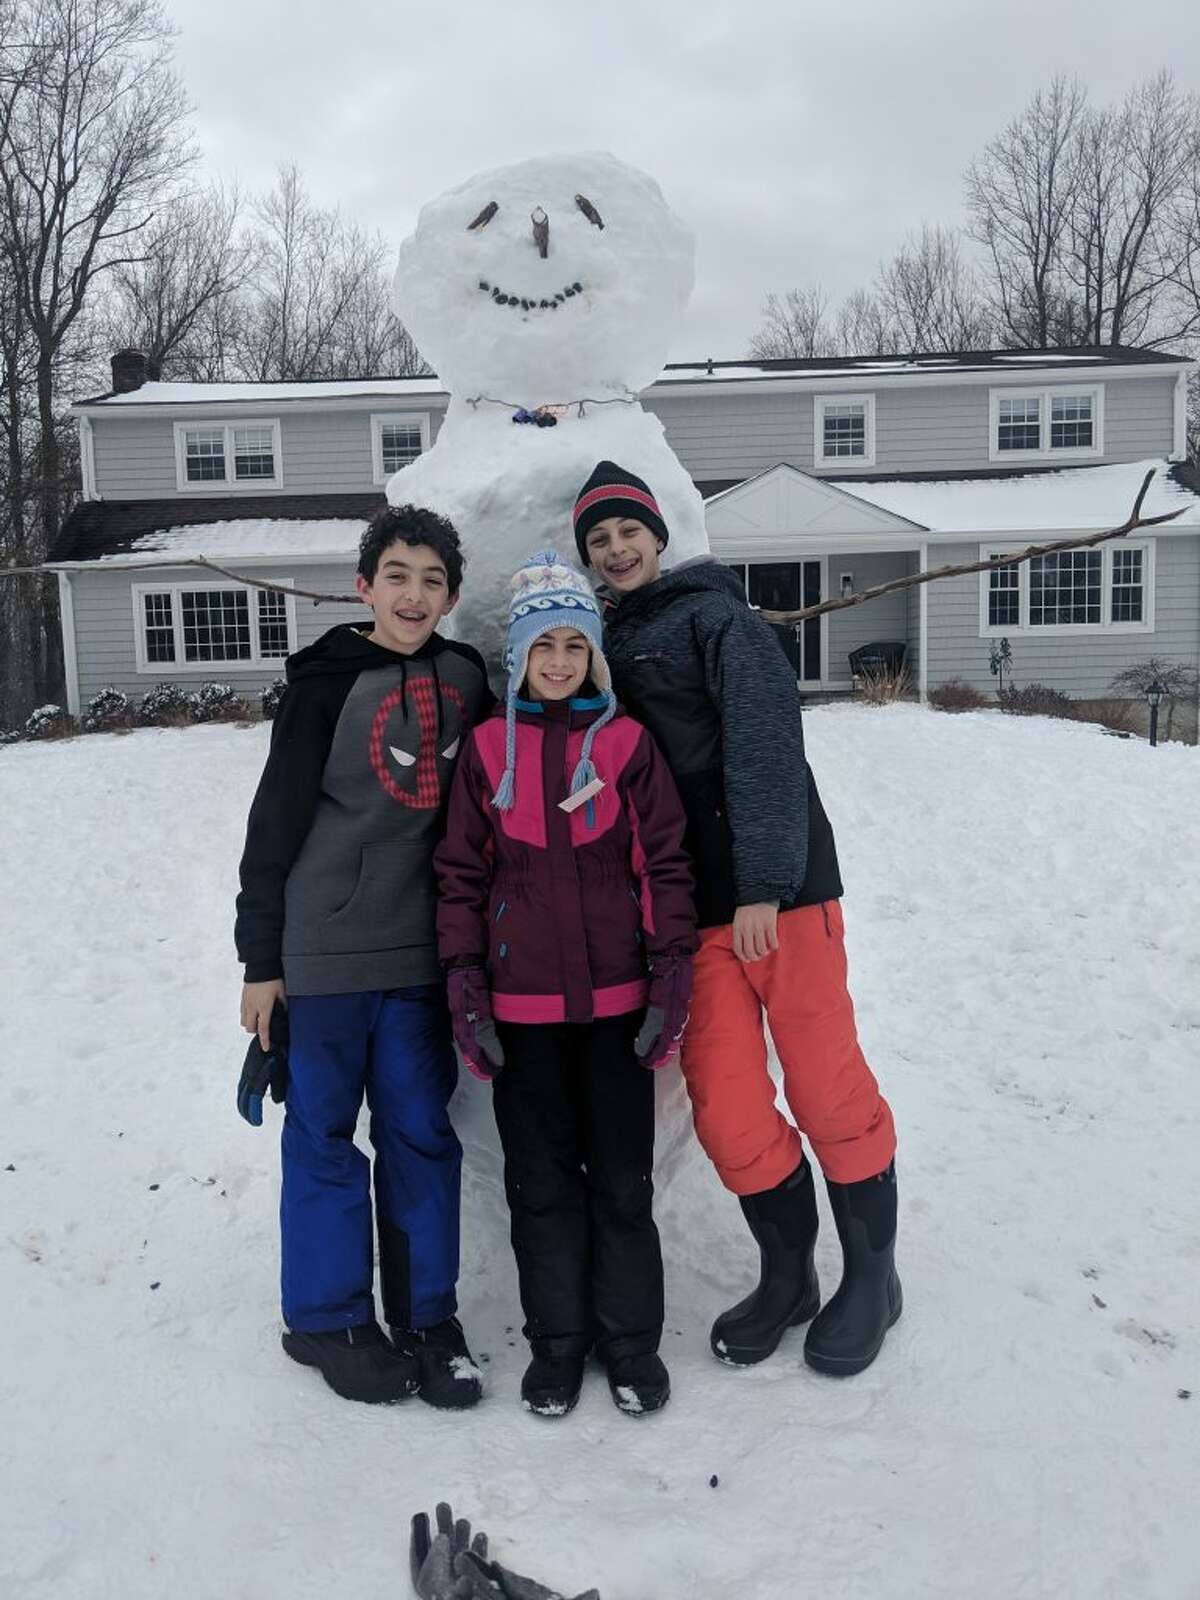 """Who's got the tallest snowman in town? It's got to be the Smuckler children Zach, Griffin and Leah who build this 10-foot giant over the weekend. They've got plenty of fresh powder to build a replica today. """"They worked hard to hoist that head up there,"""" said mom Carrie Smuckler."""